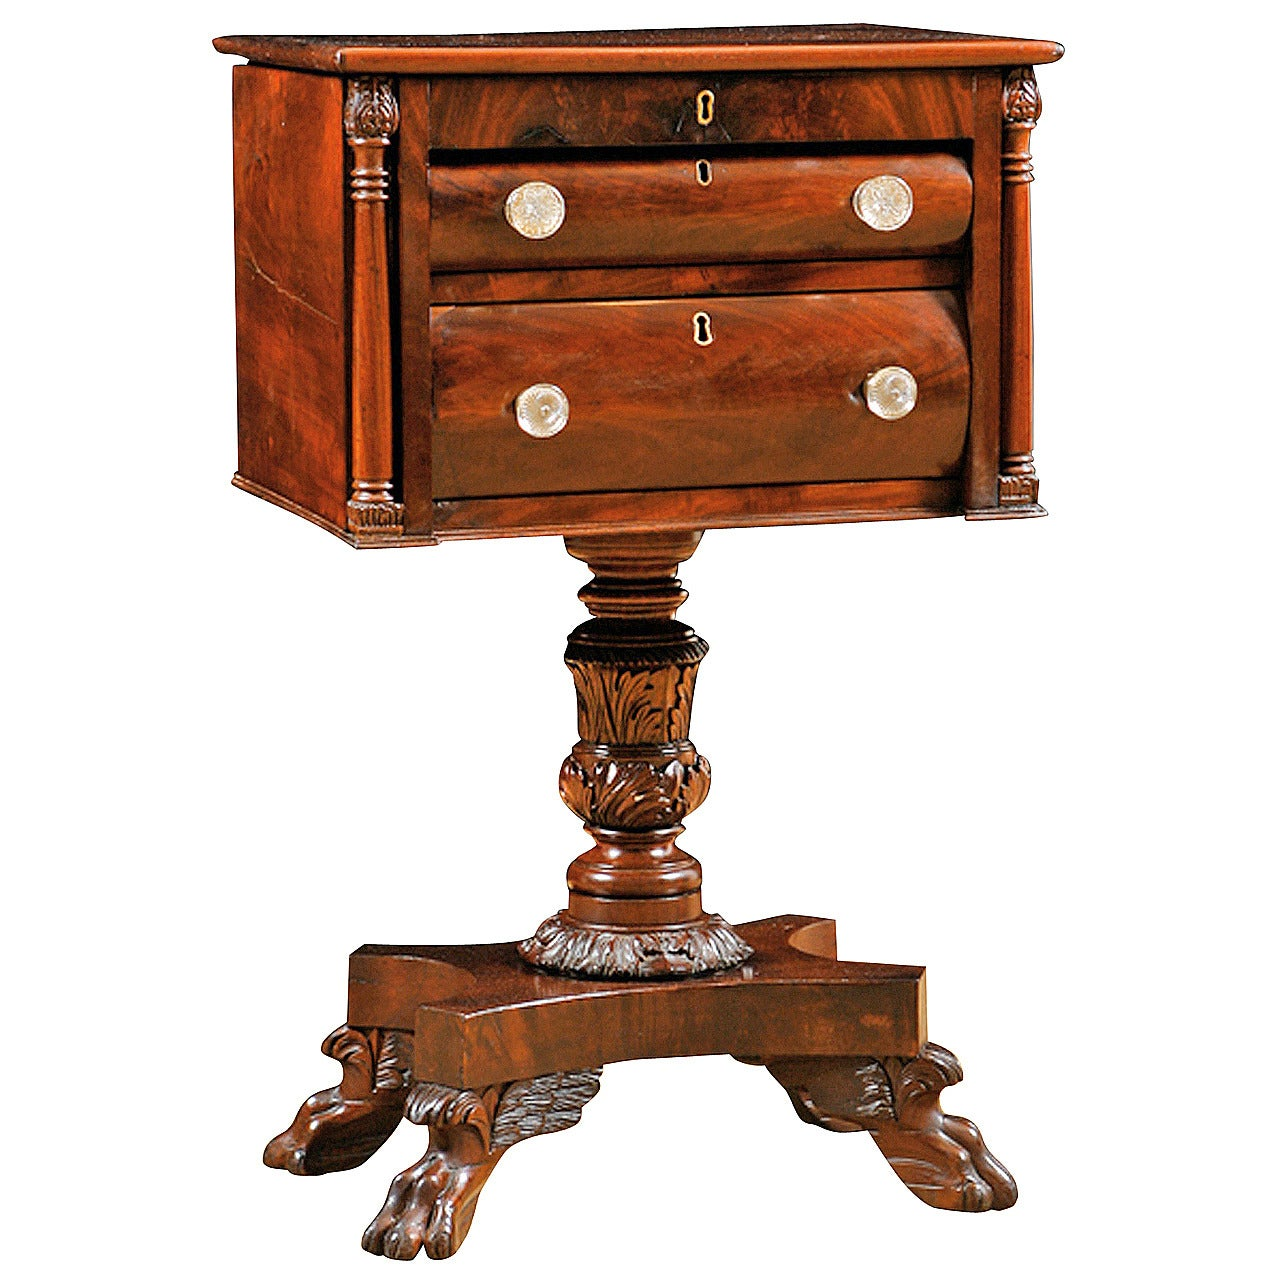 American Empire Side Table with Writing Surface in Mahogany, circa 1825